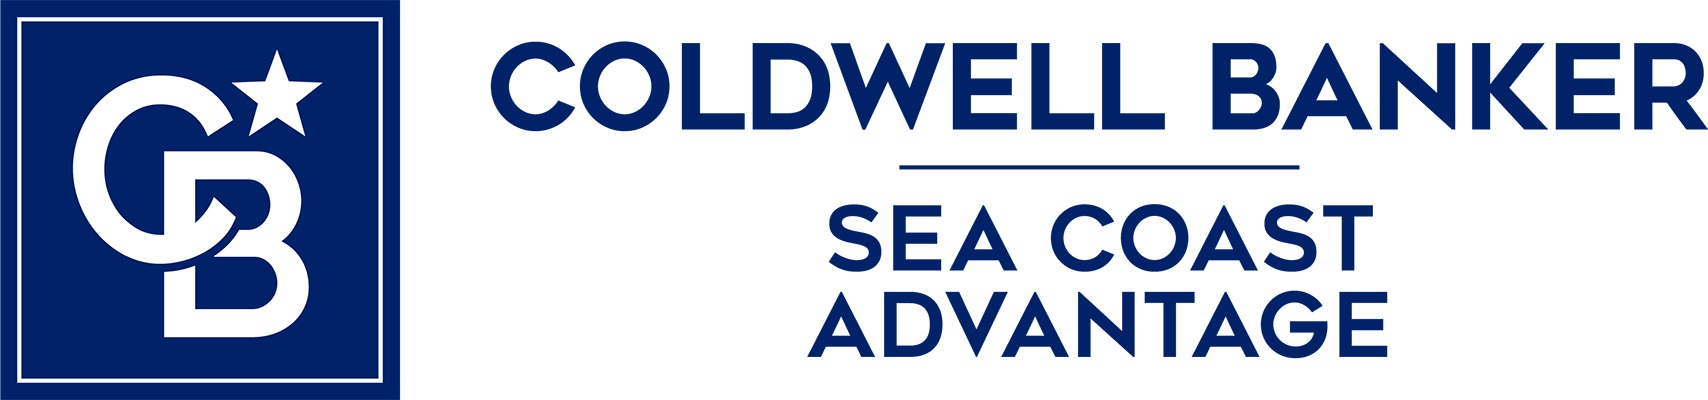 Brenda Freckleton - Coldwell Banker Sea Coast Advantage Realty